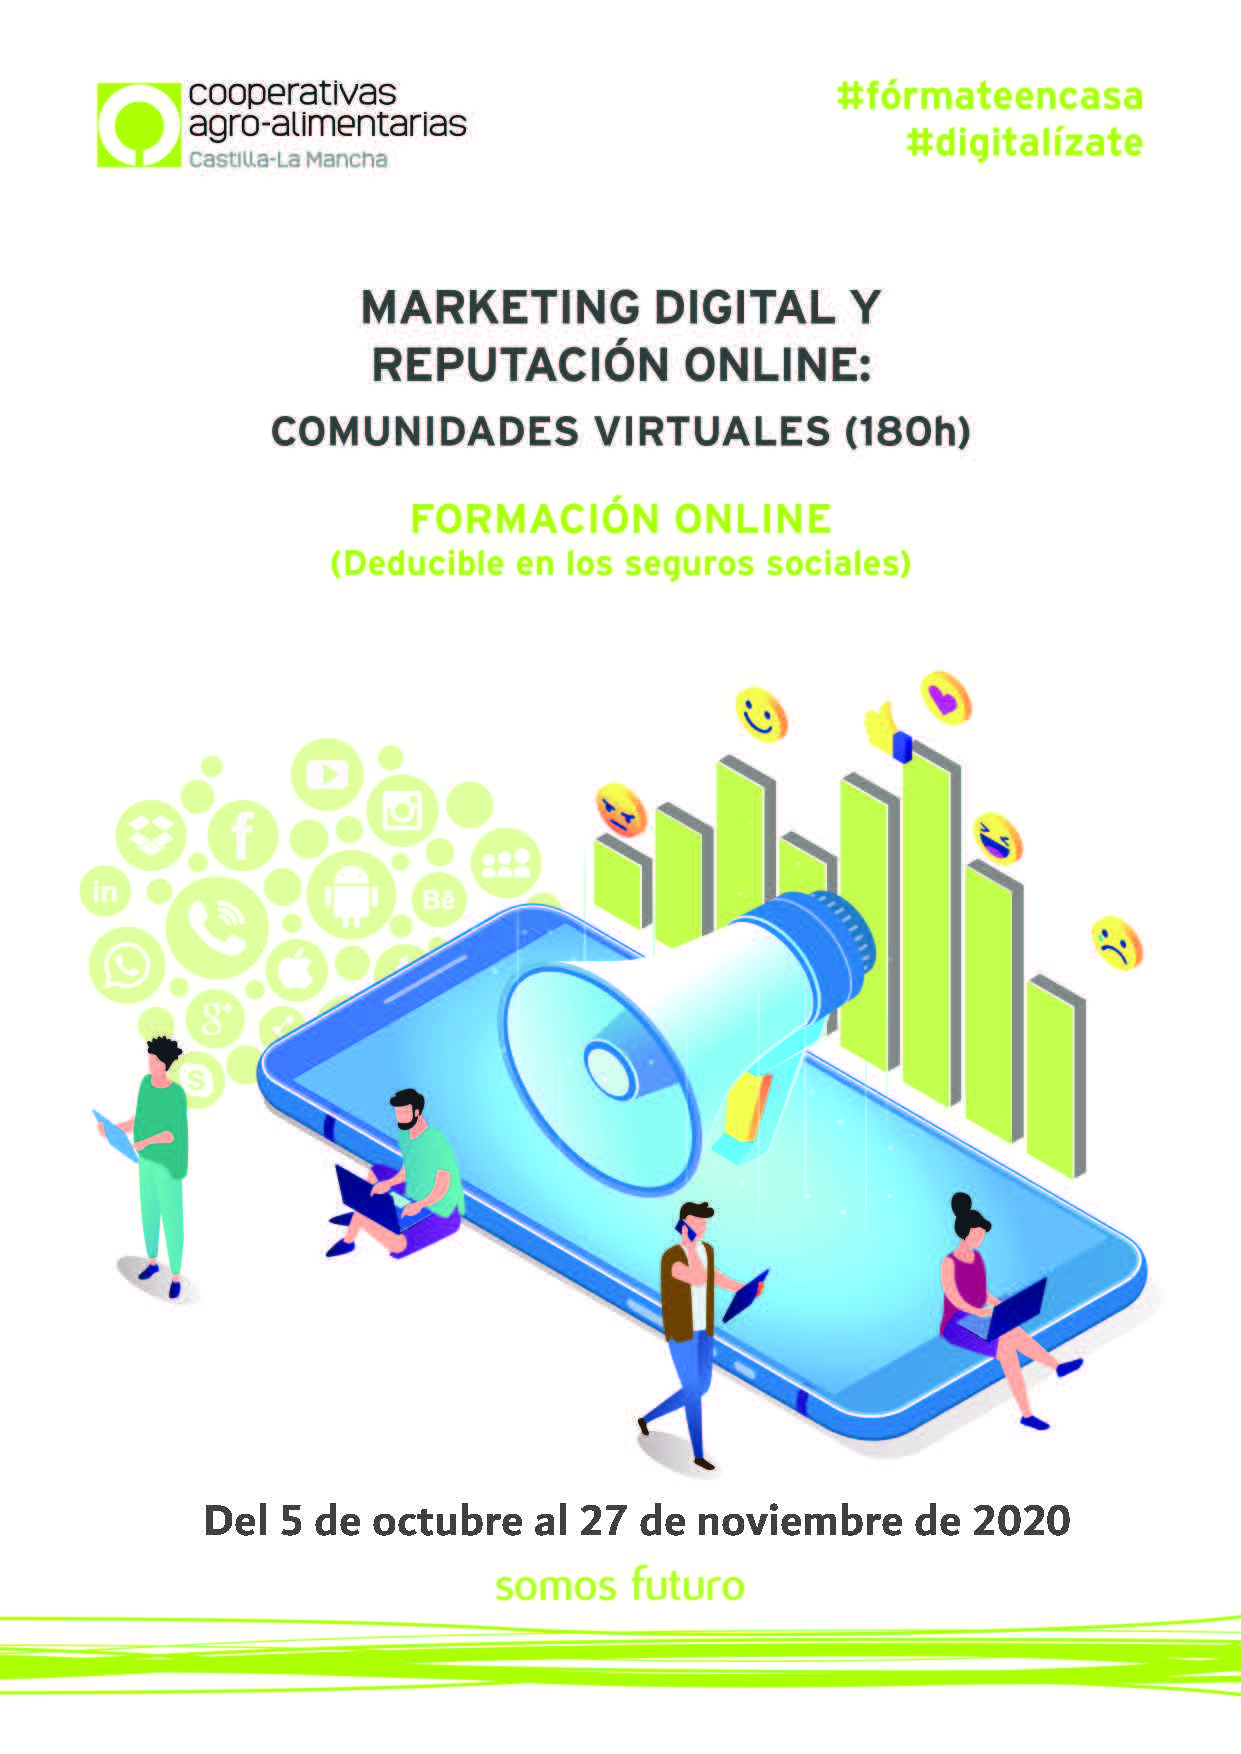 MARKETING Y REPUTACIÓN ONLINE: COMUNIDADES VIRTUALES